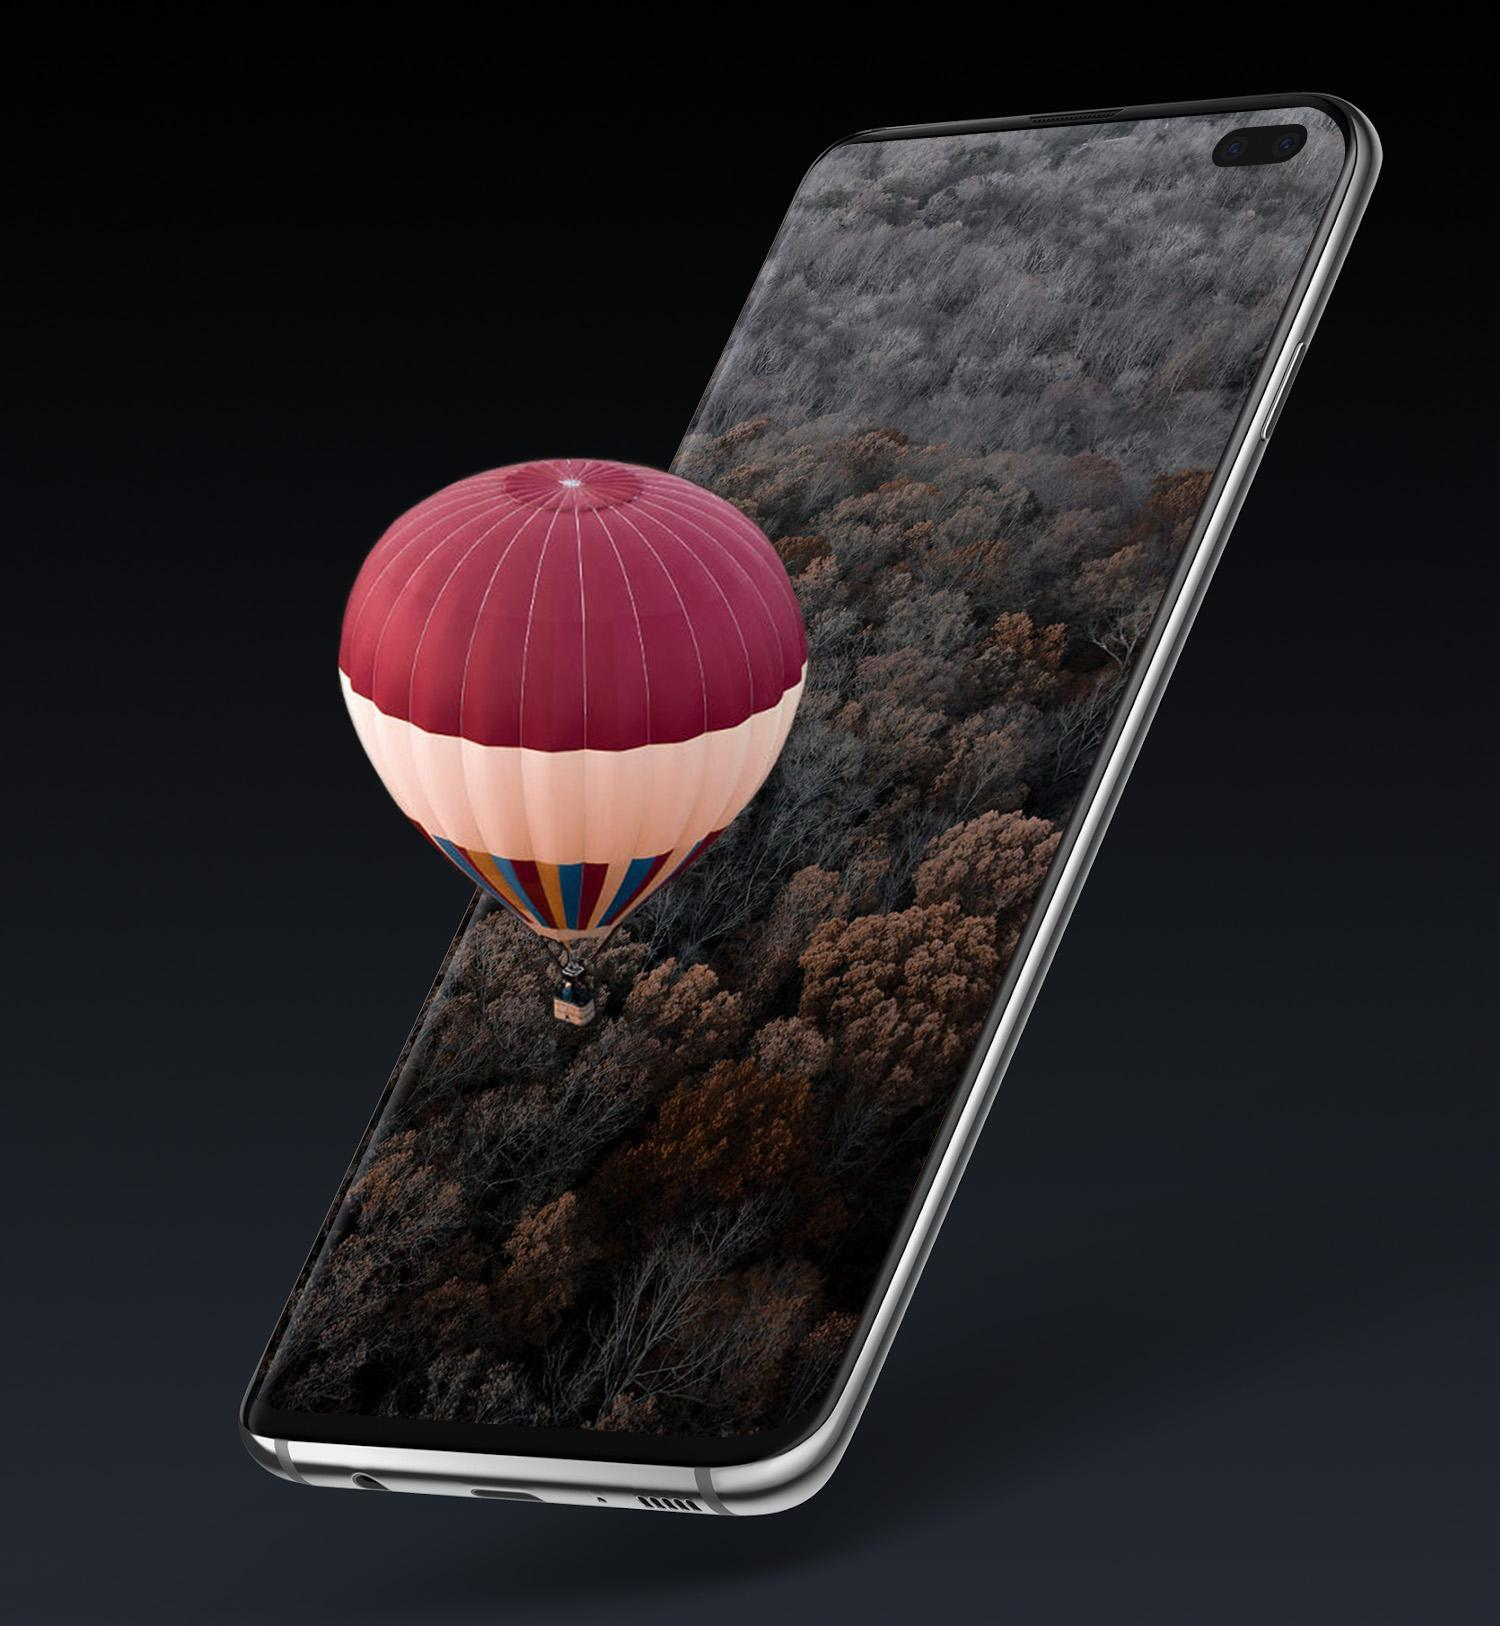 Wallpapers Backgrounds & Lockscreen 3D Effect For Android